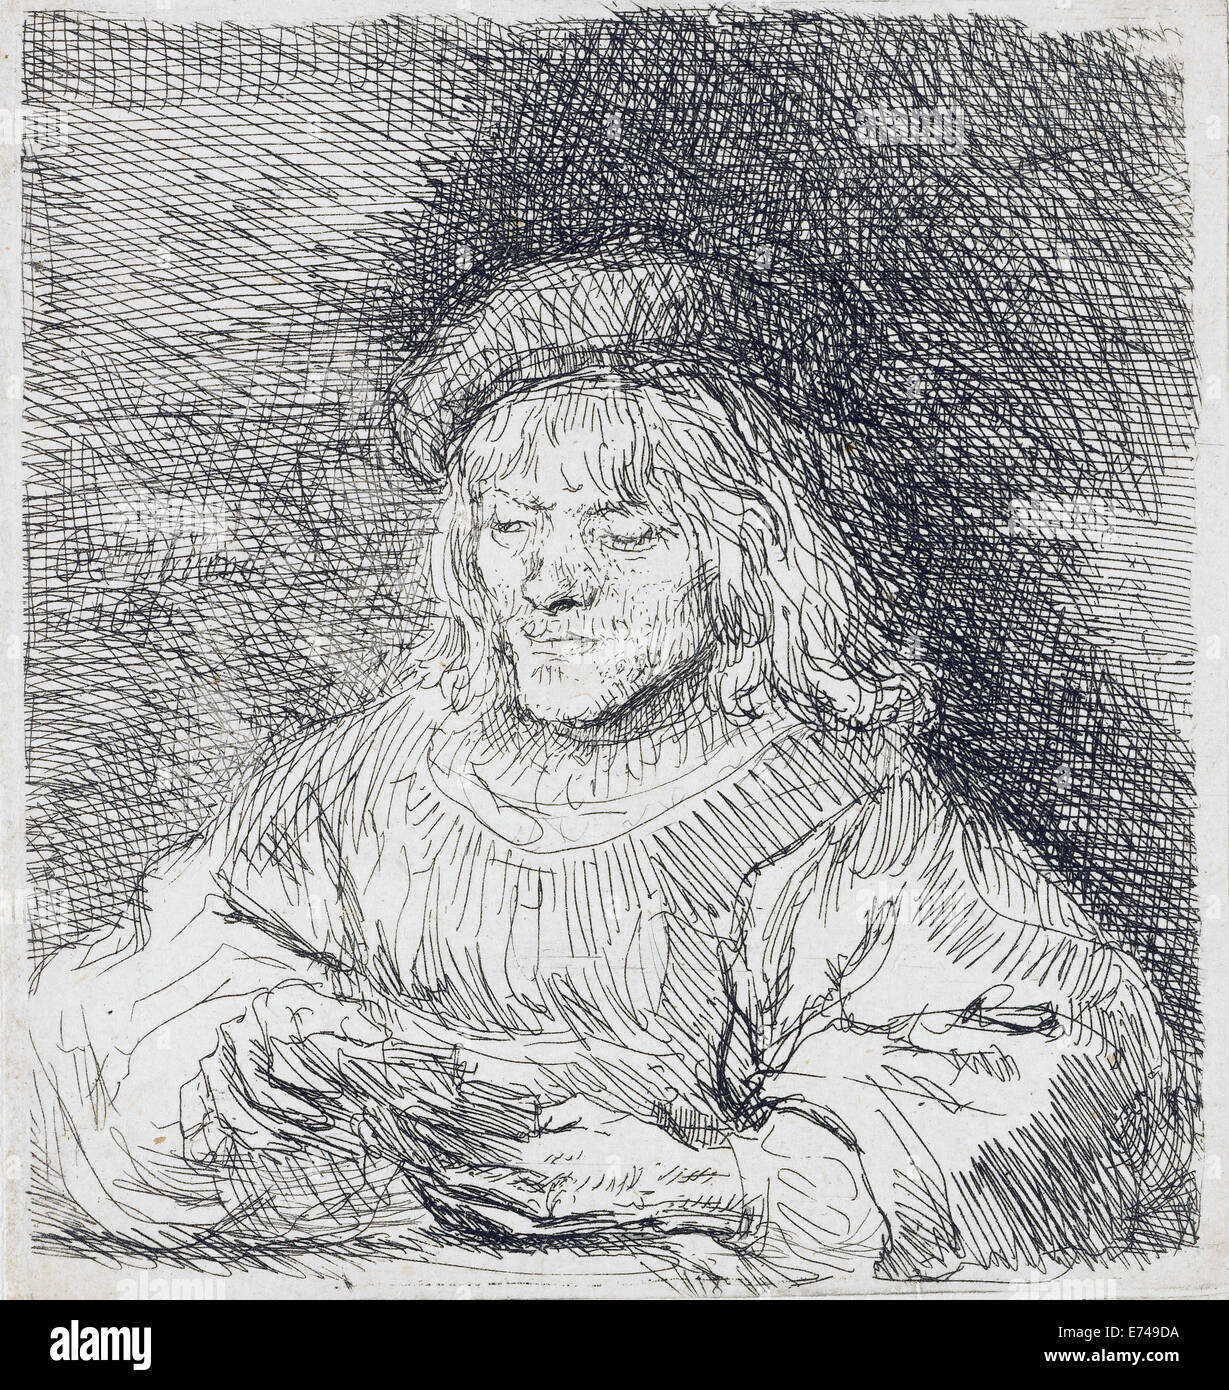 The Card Player - by Rembrandt Harmensz van Rijn, 1641 - Stock Image